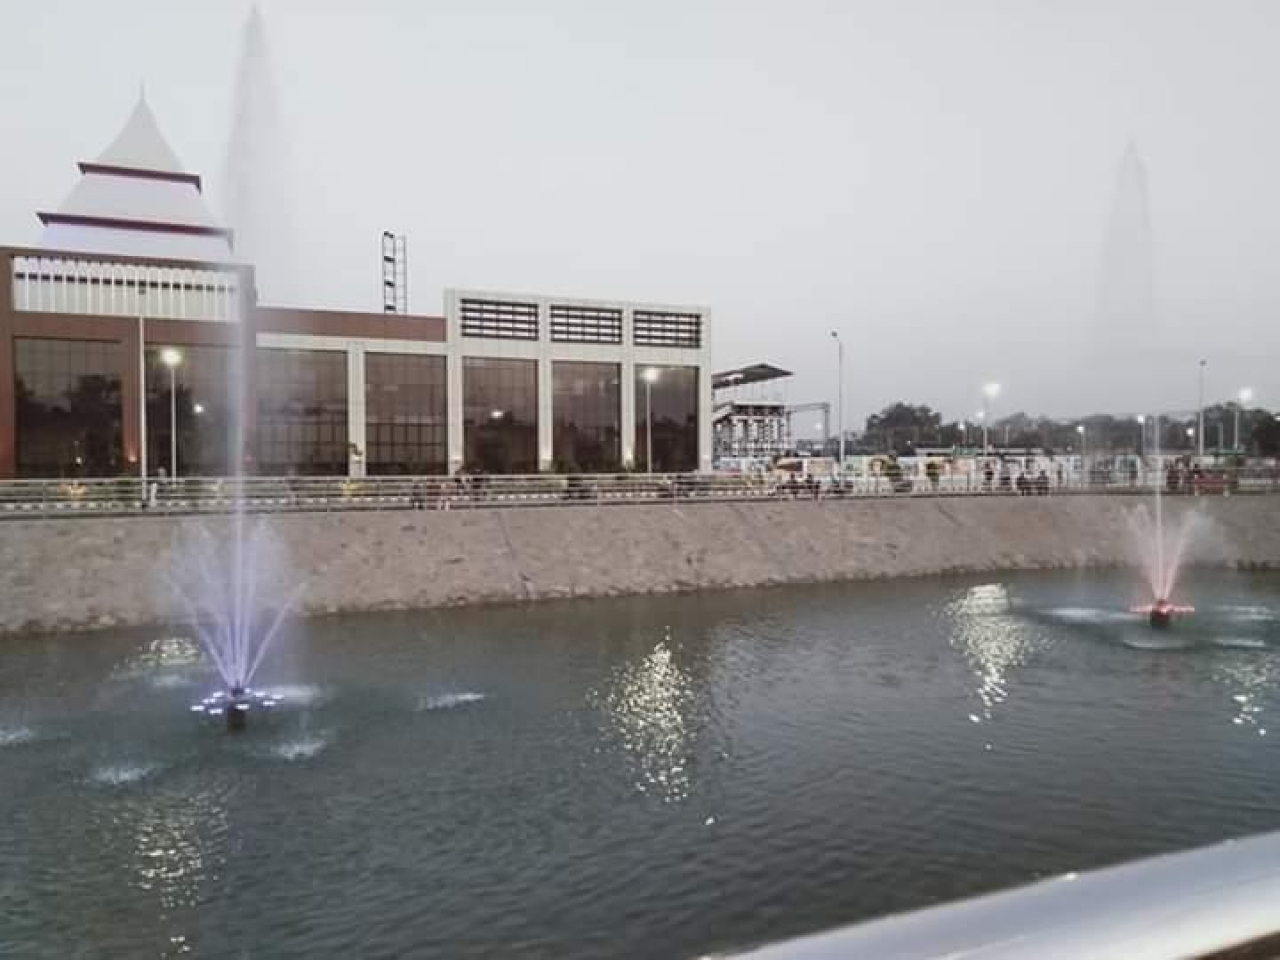 Fountain outside the station